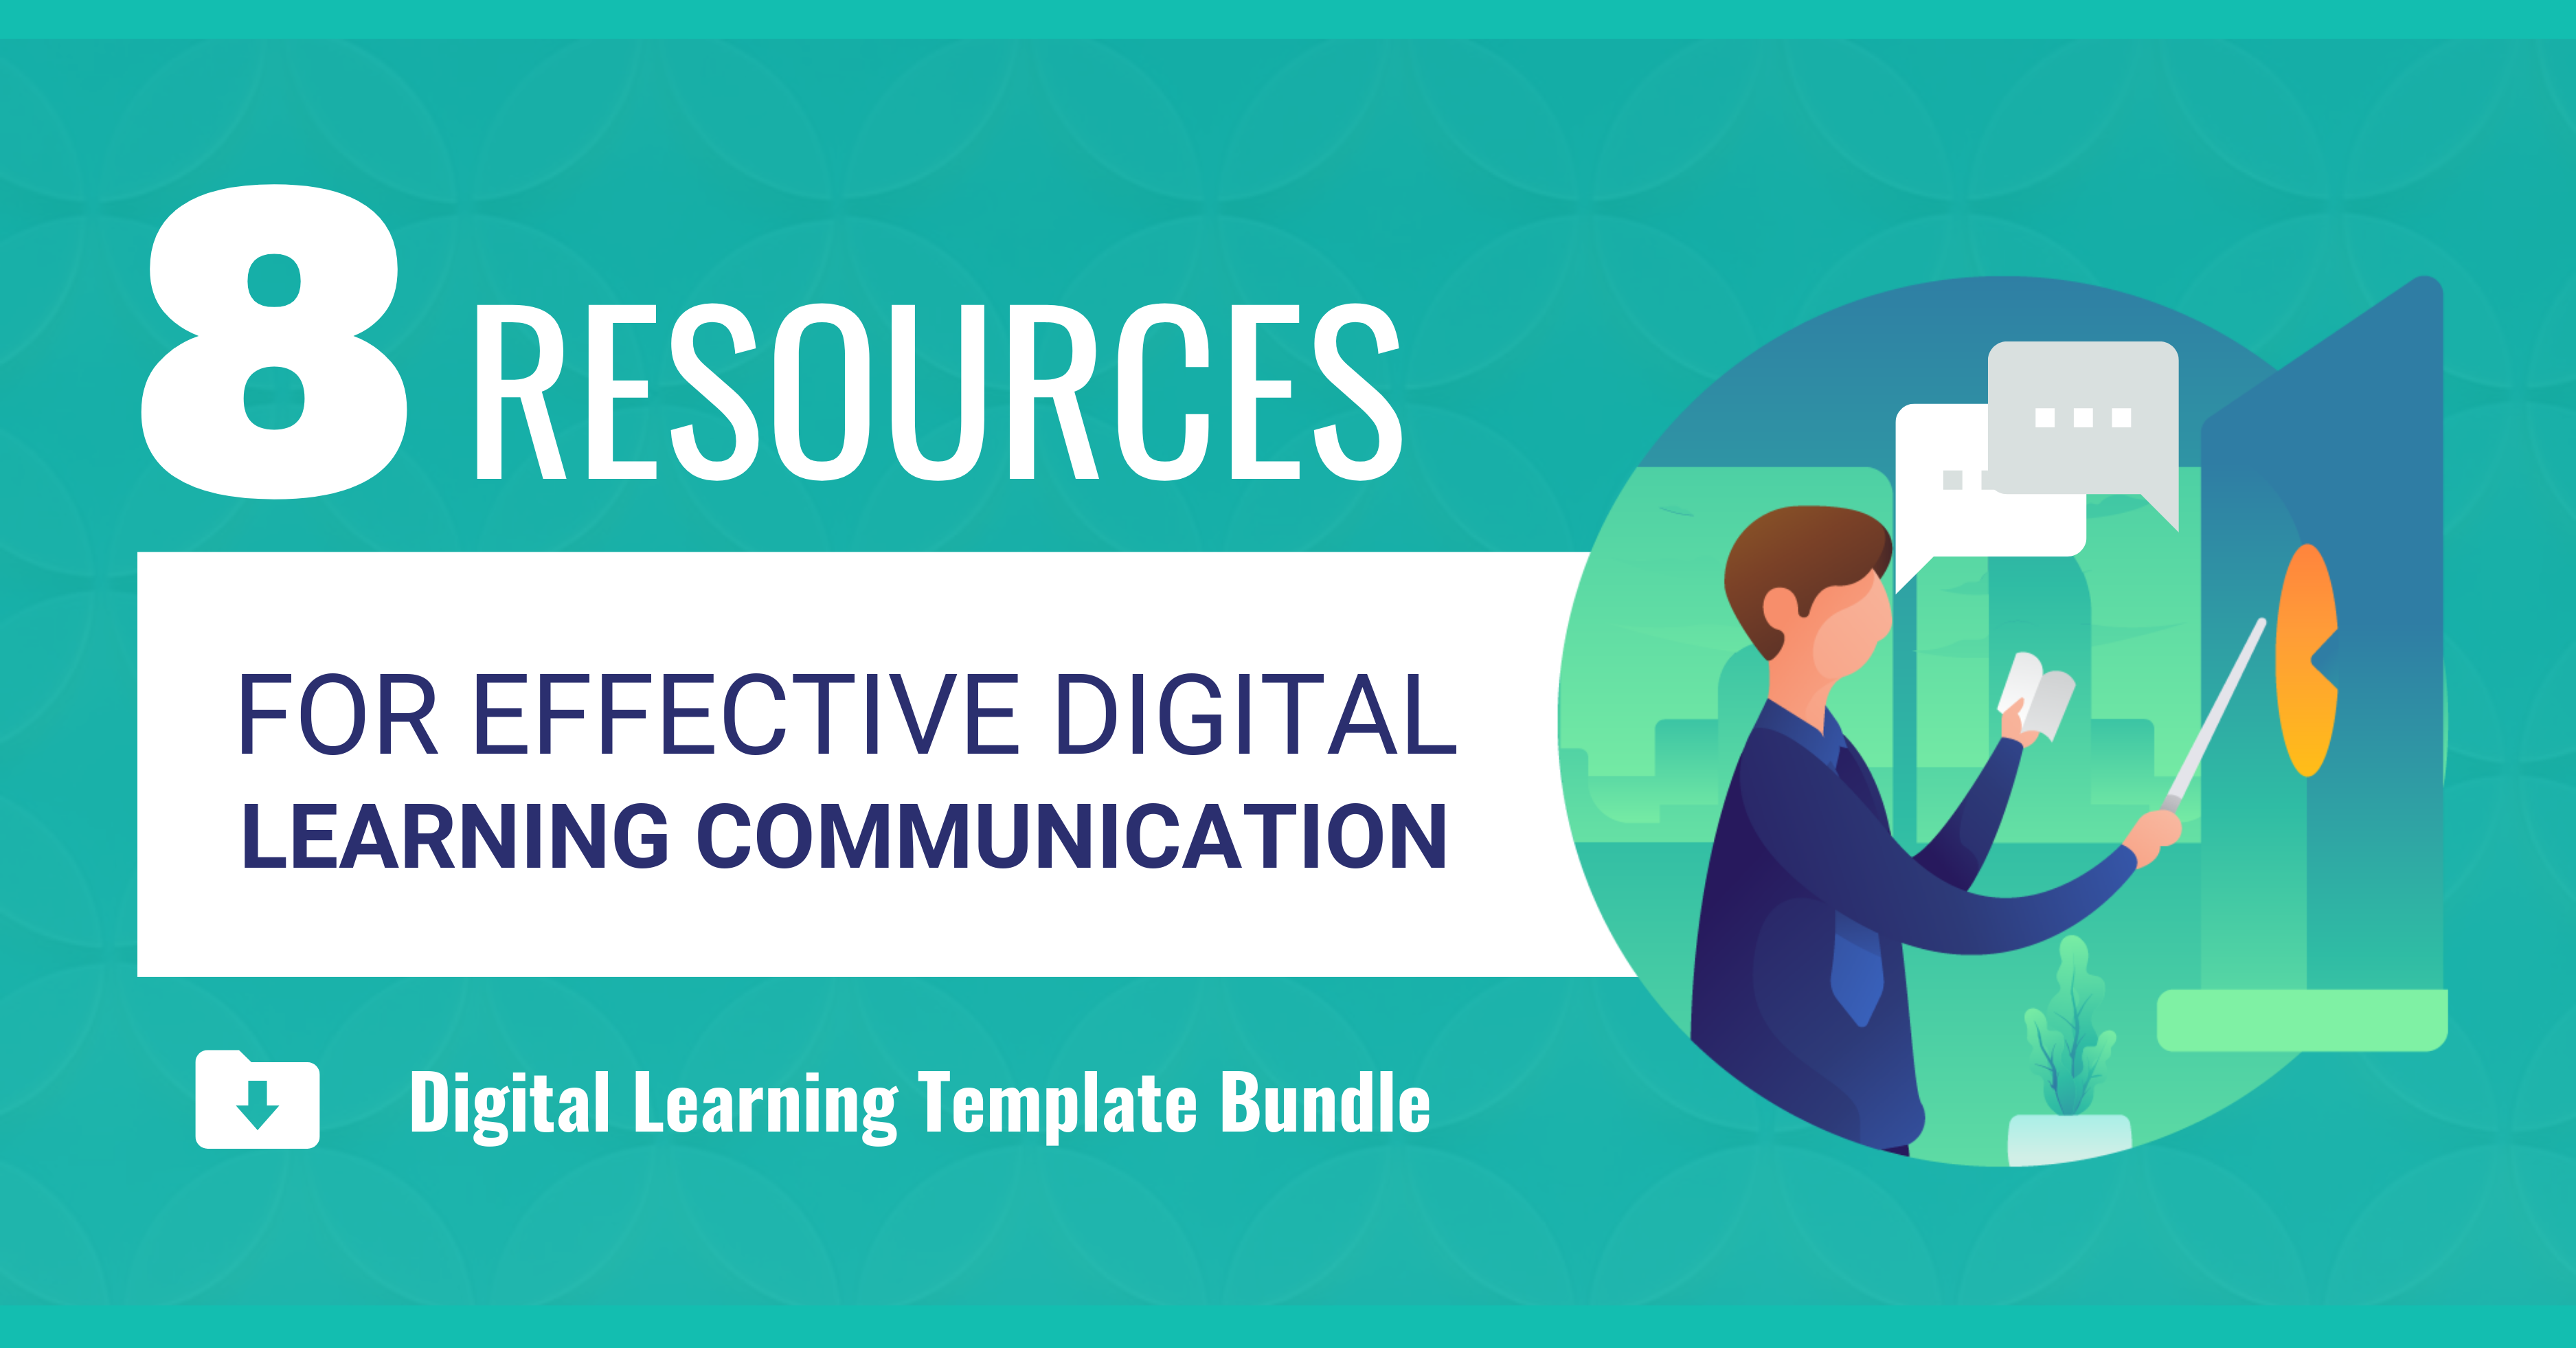 8-Resources-for-effective-digital-larning-communications